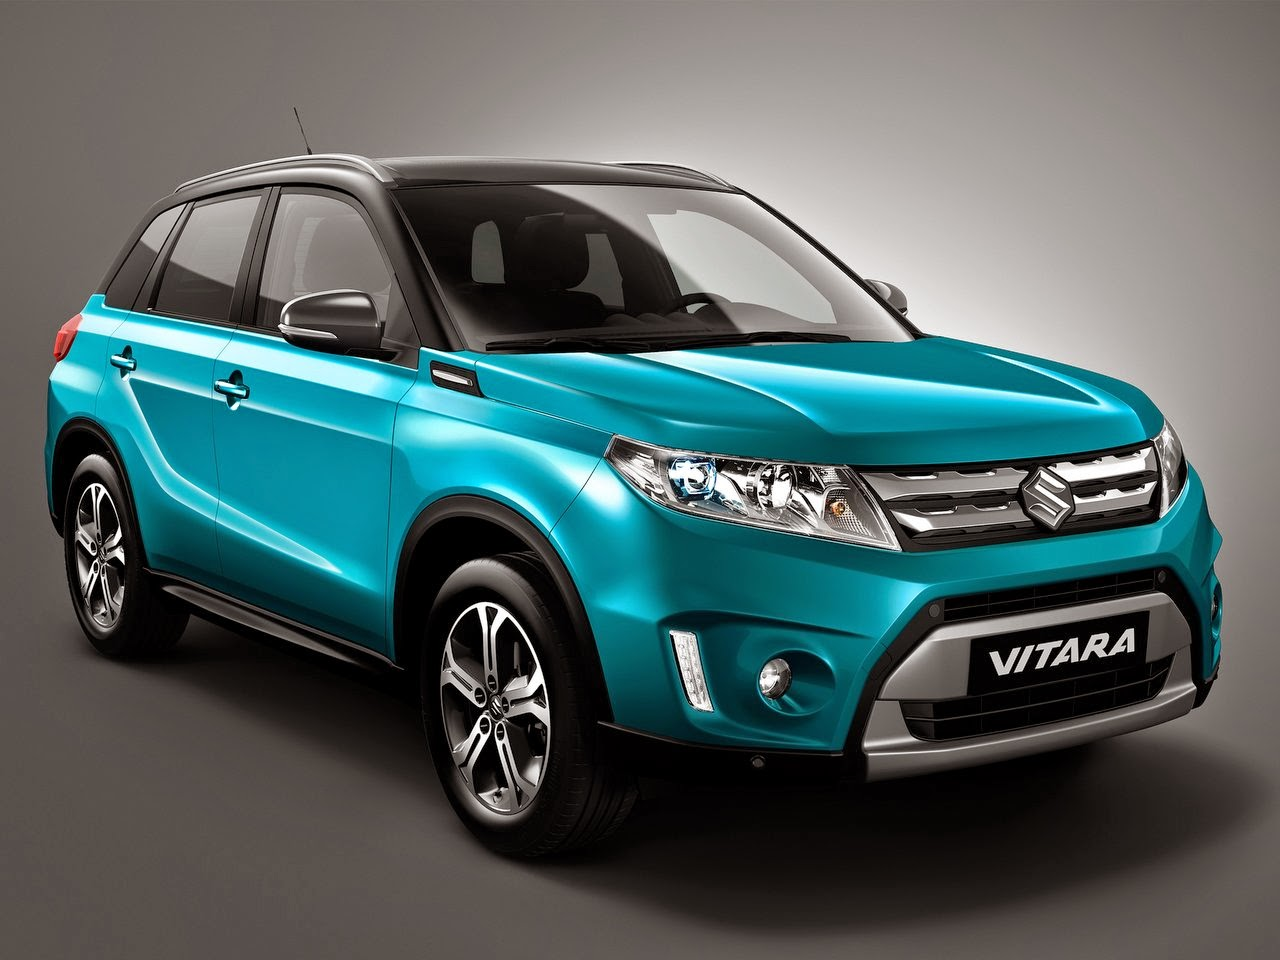 2015 suzuki iv 4 vitara reviews and features techgangs. Black Bedroom Furniture Sets. Home Design Ideas